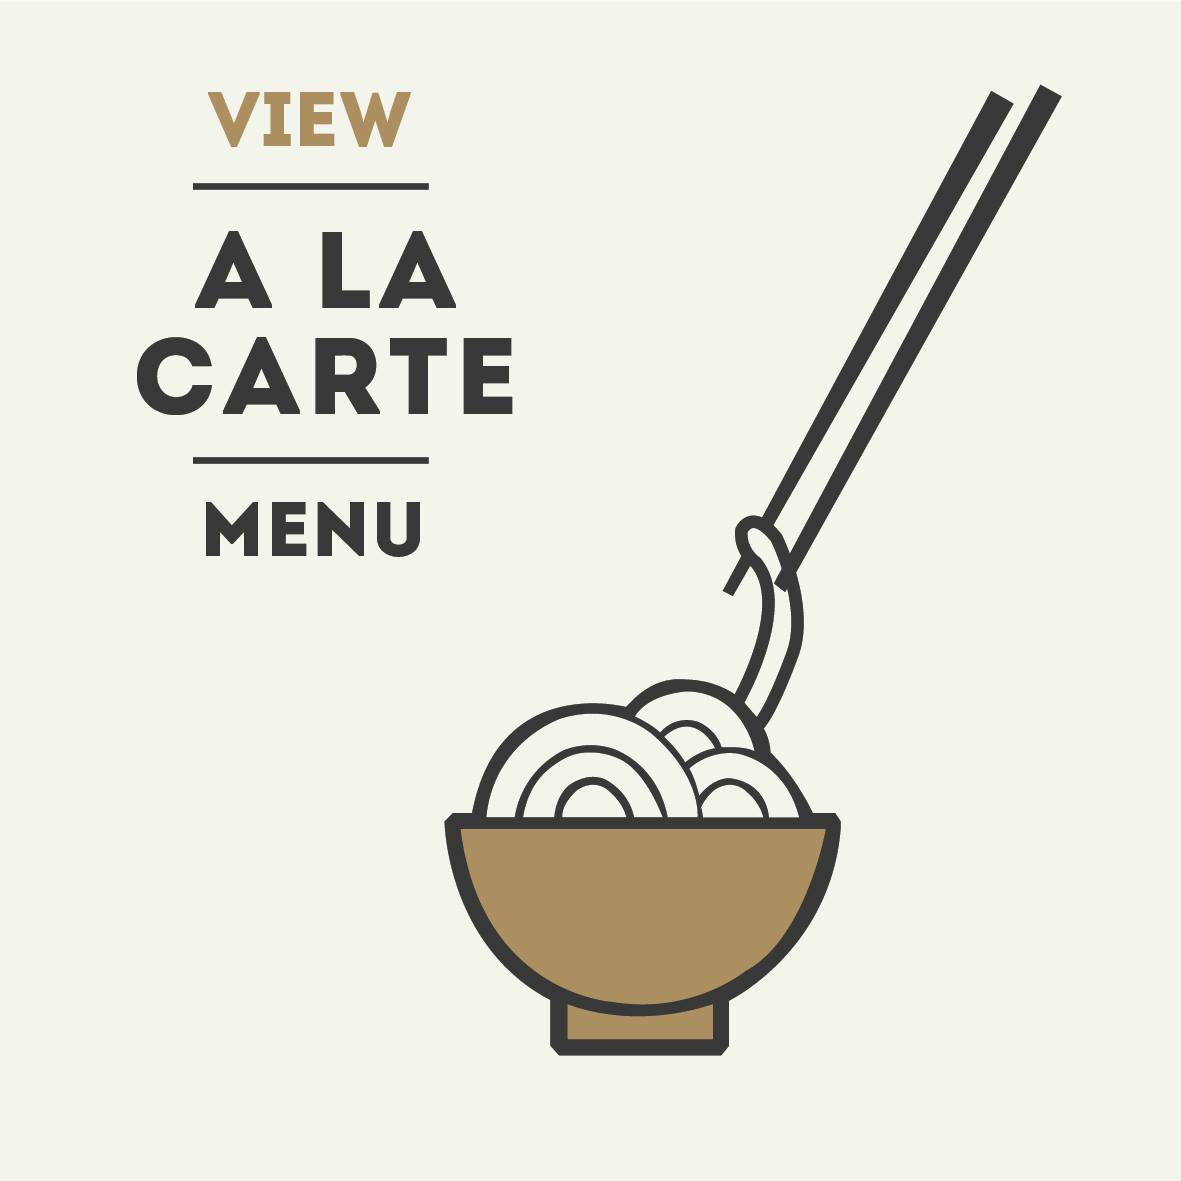 View the a la carter menu